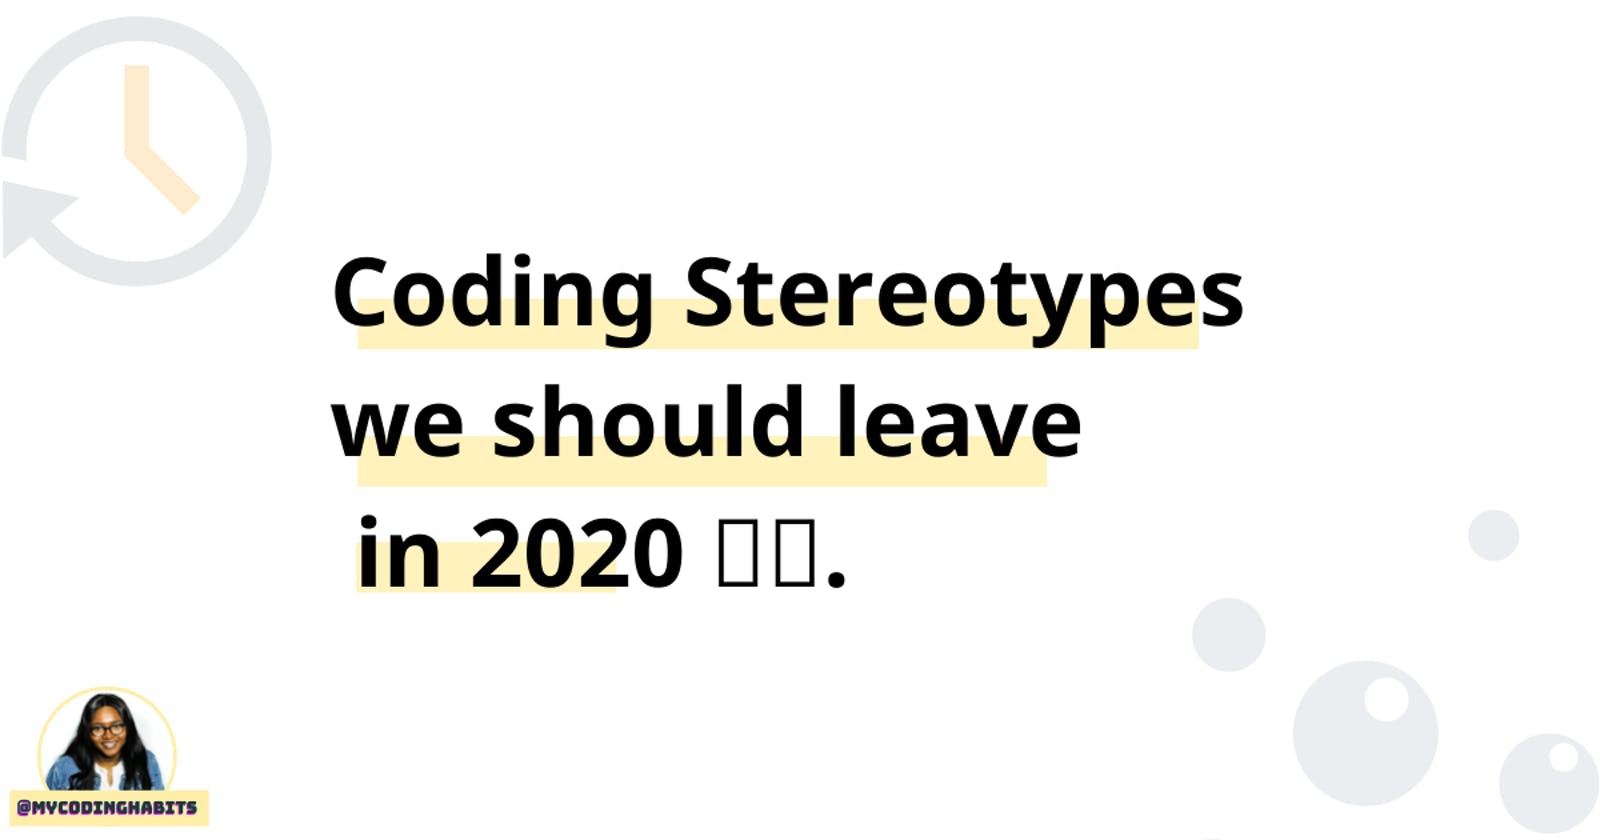 Coding Stereotypes we should leave in 2020!